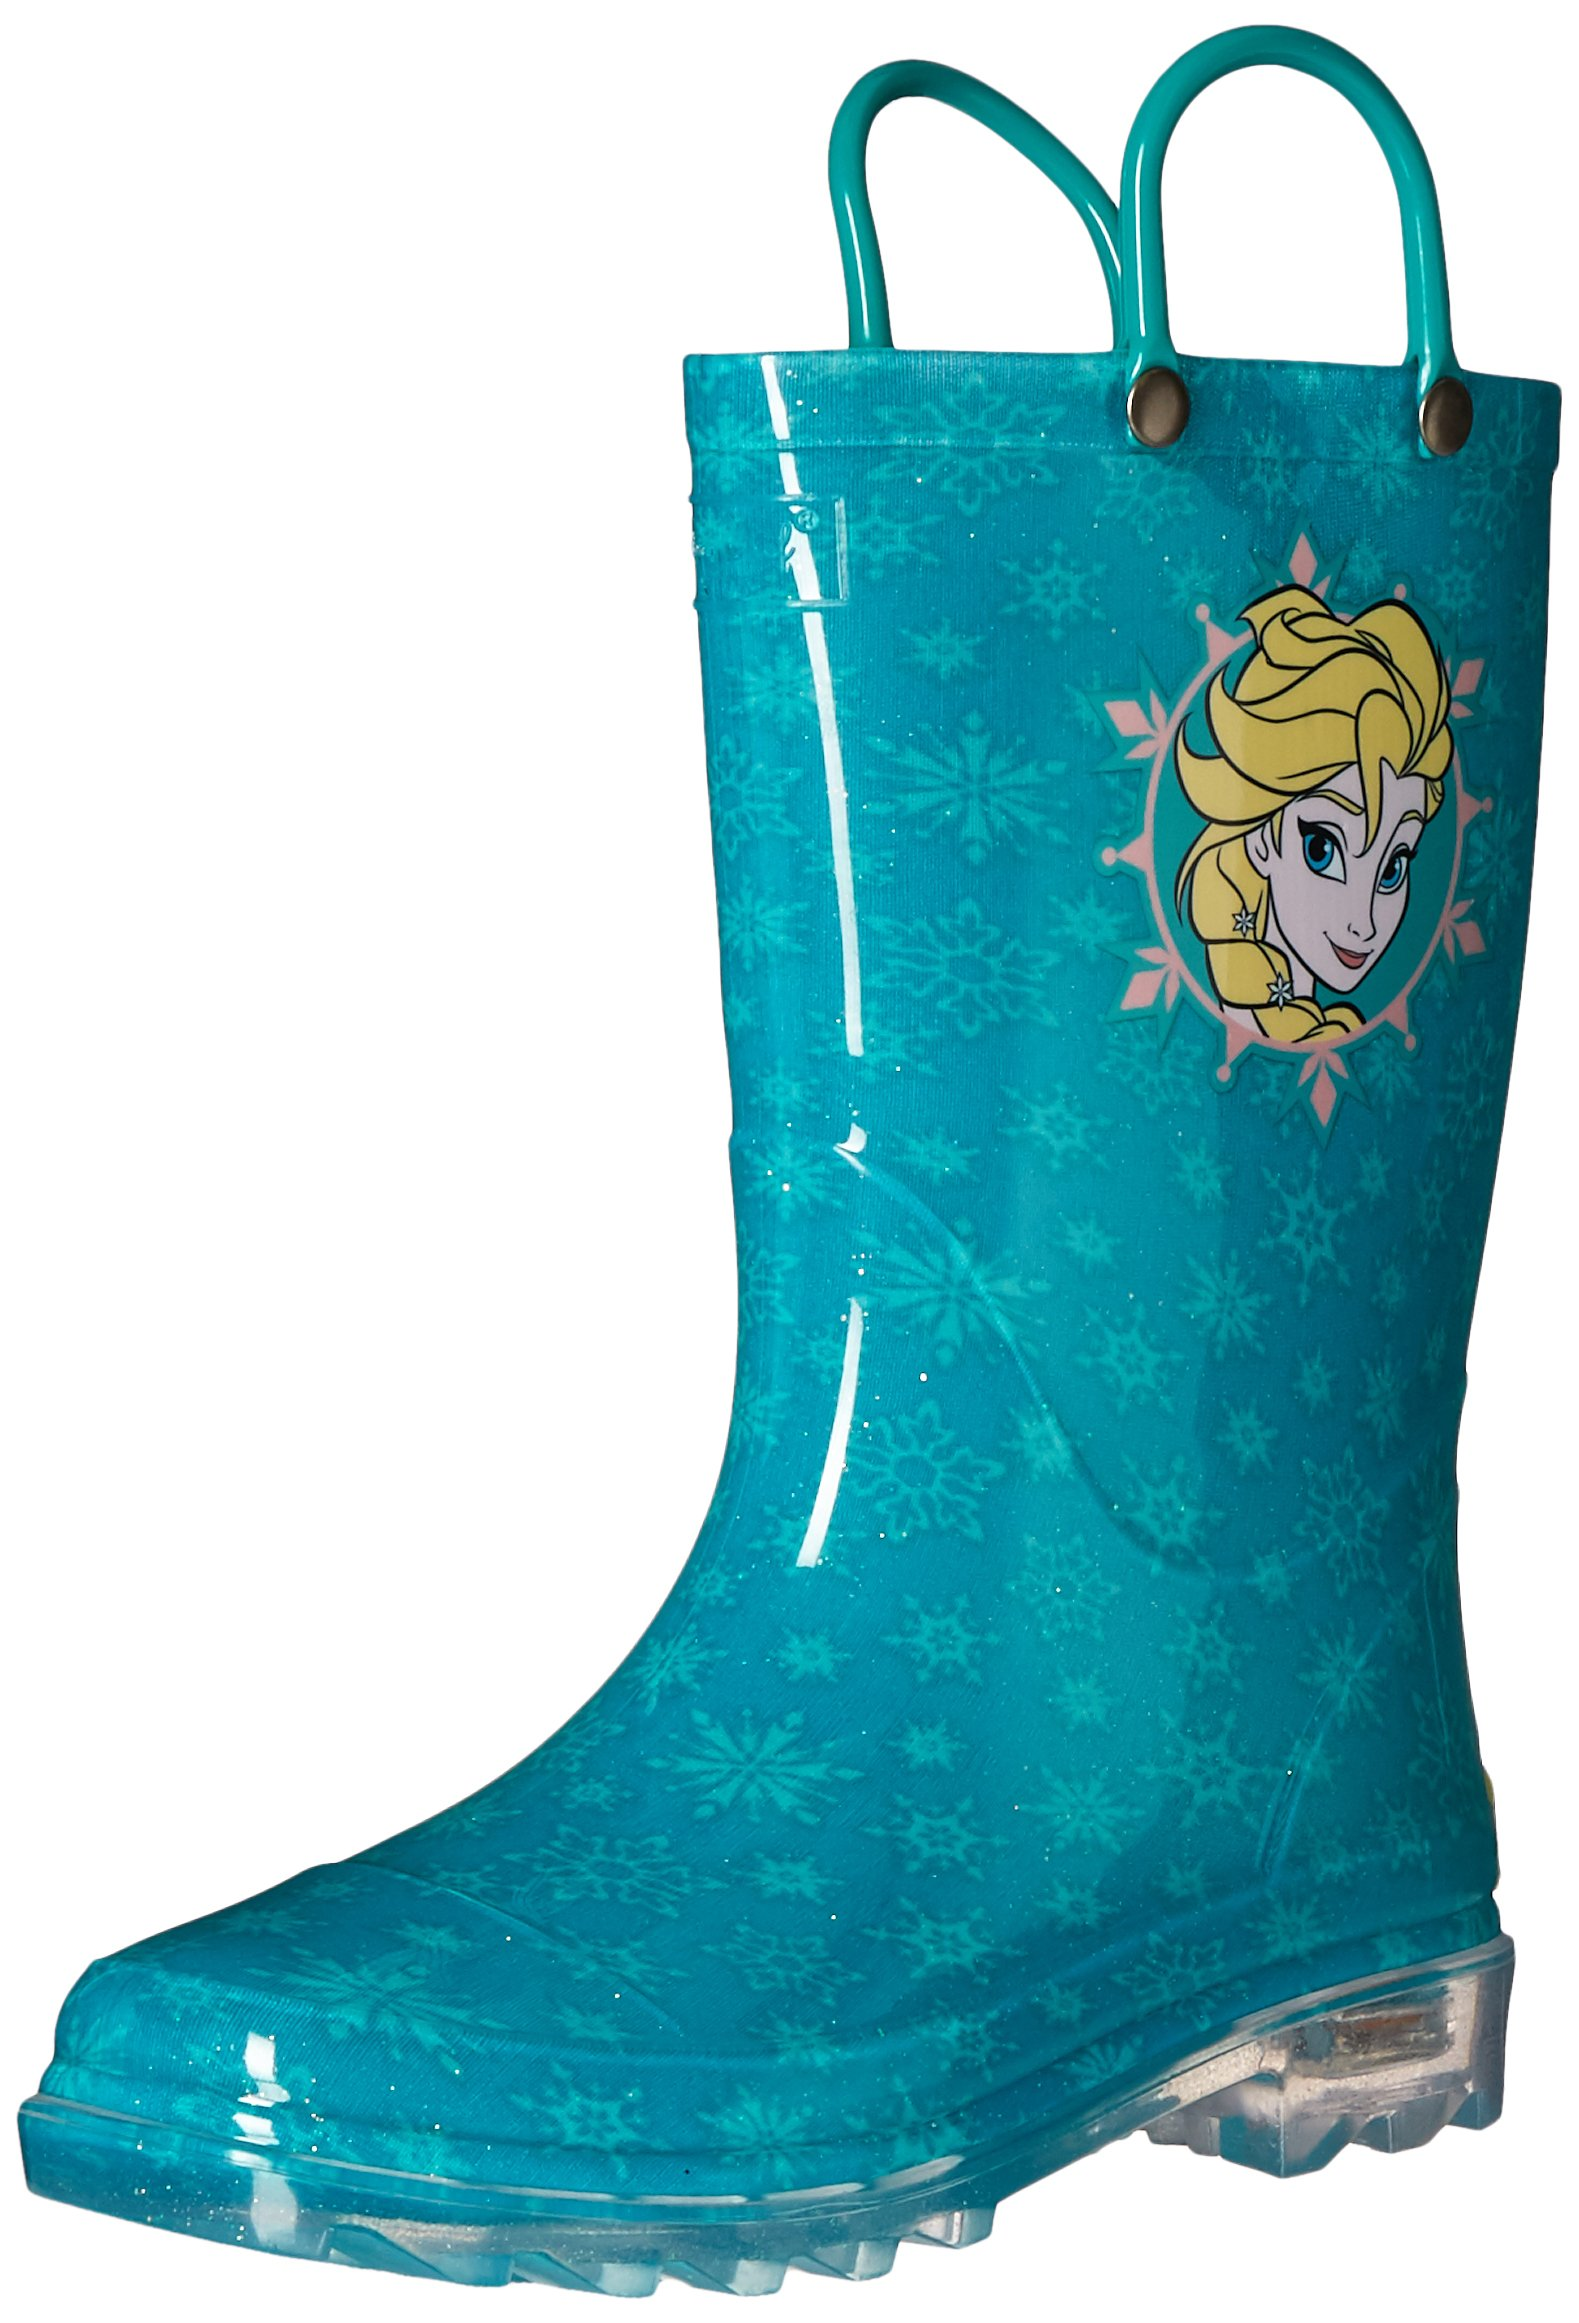 Western Chief Kids Girls' Waterproof Rain Boots That Light up with Each Step, Frozen Elsa and and, 13 M US Little Kid by Western Chief (Image #1)